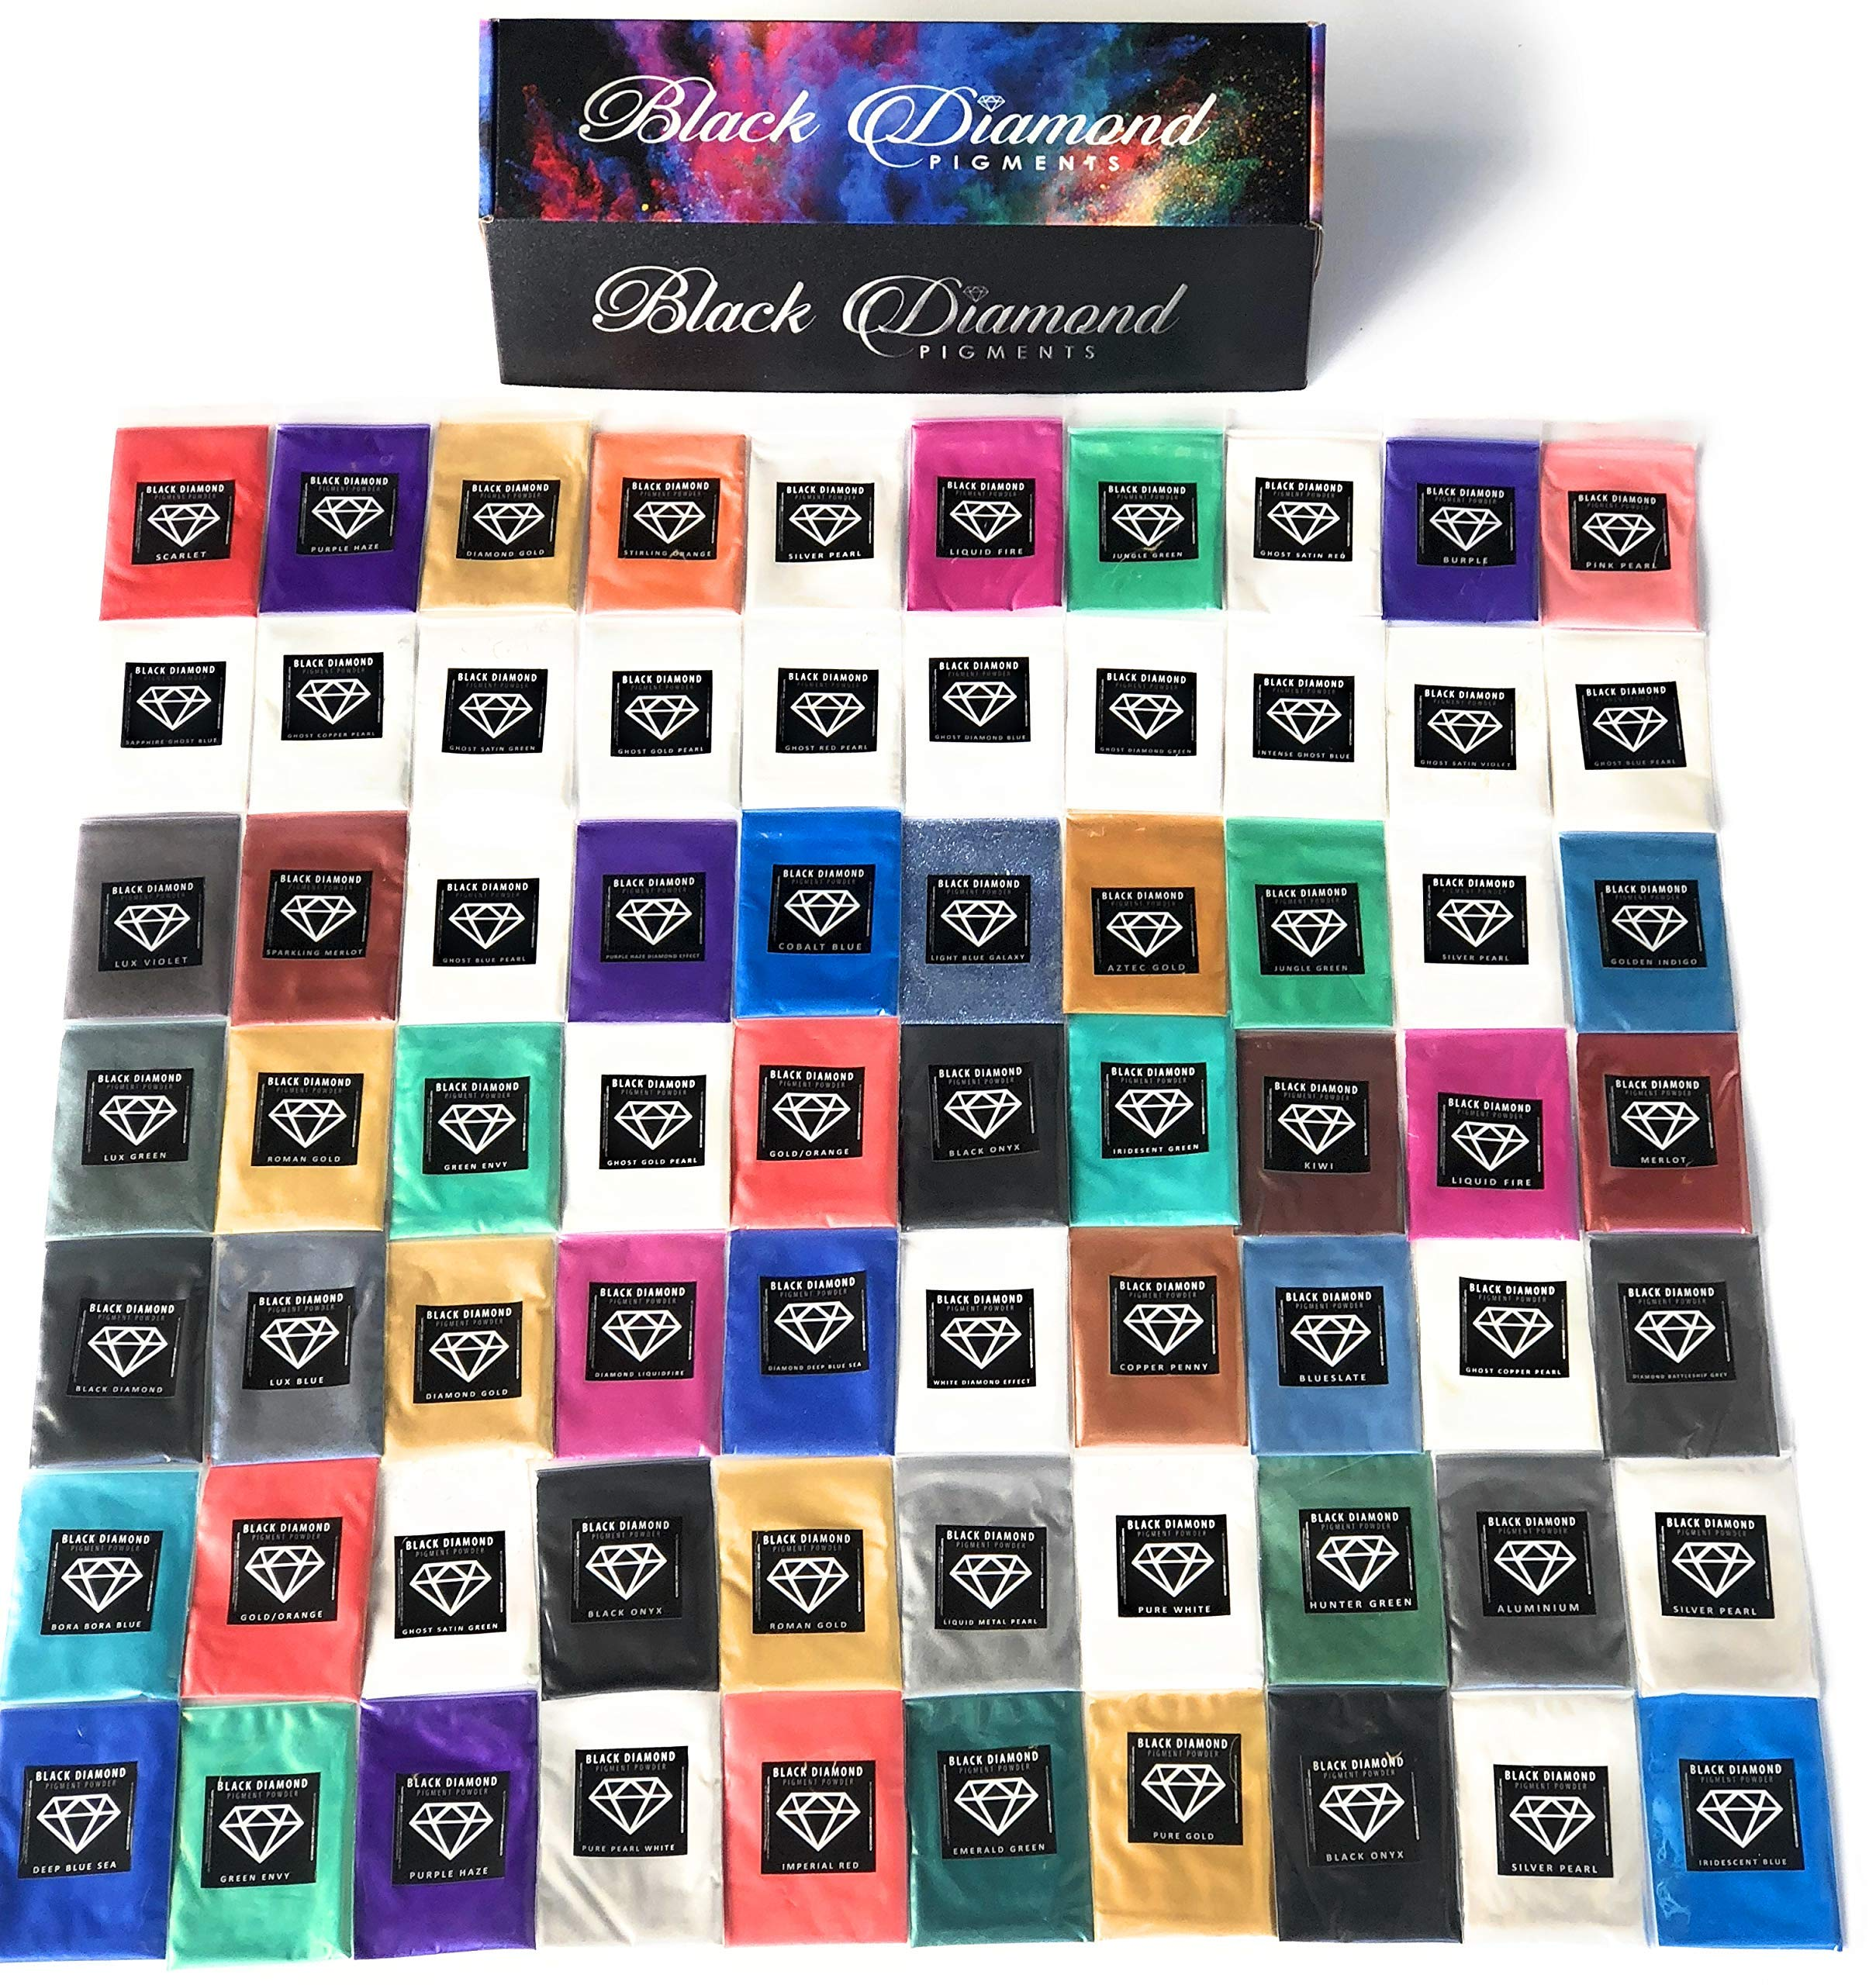 MICA Pigment Box 1'' (7 Variety Packs) 70-5g Packs Total Including Ghost pigments (Epoxy,Slime,Resin,Soap) Black Diamond Pigments by BLACK DIAMOND PIGMENTS